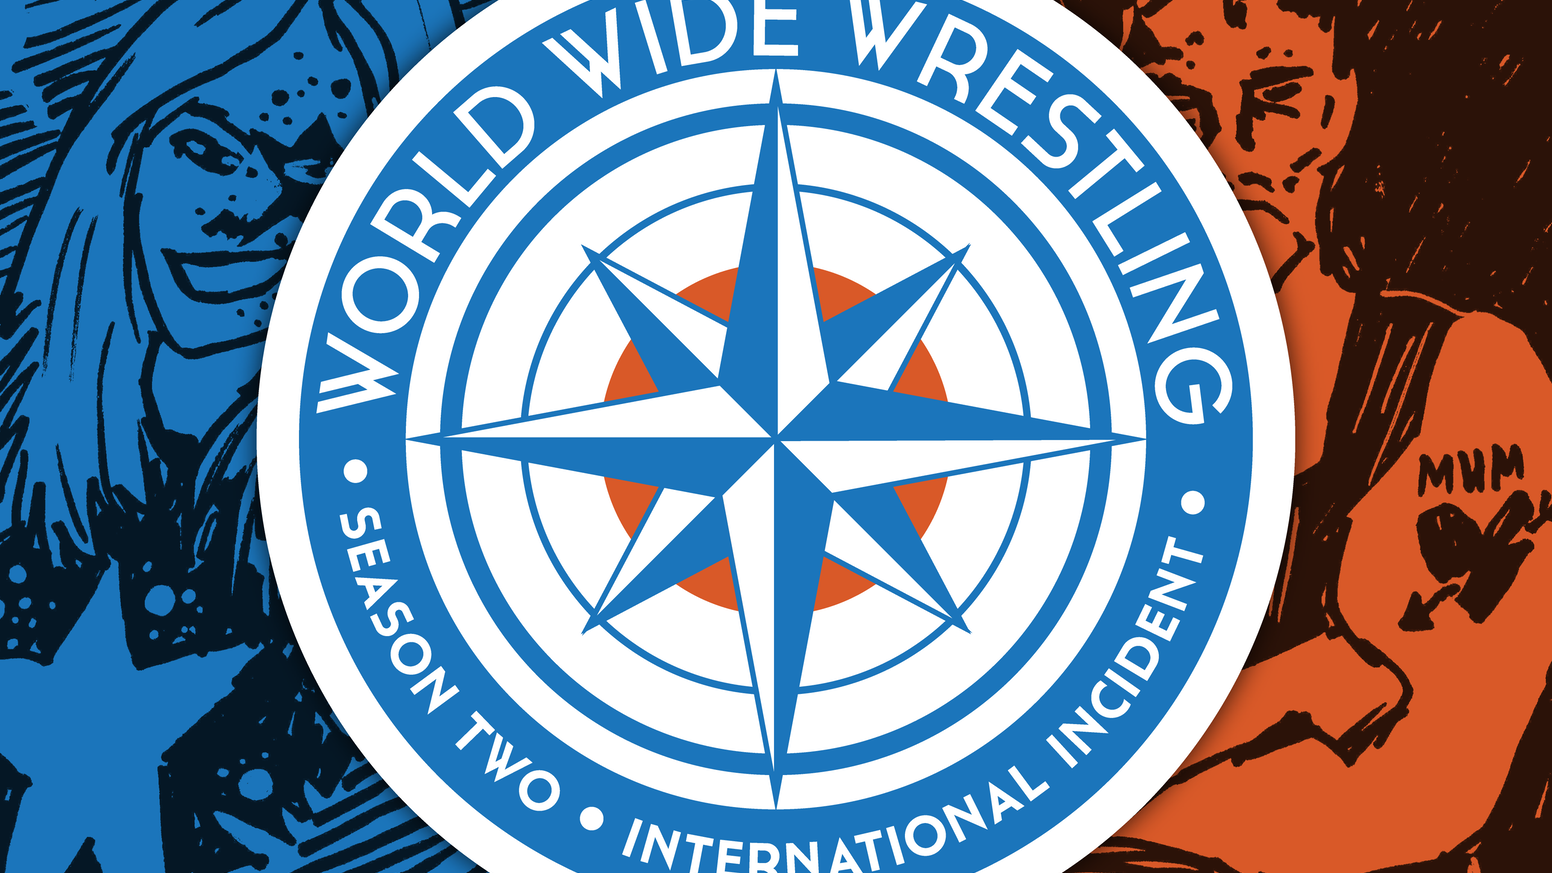 This high-flying supplement brings international professional wrestling styles and exciting new rules to the World Wide Wrestling Roleplaying Game!